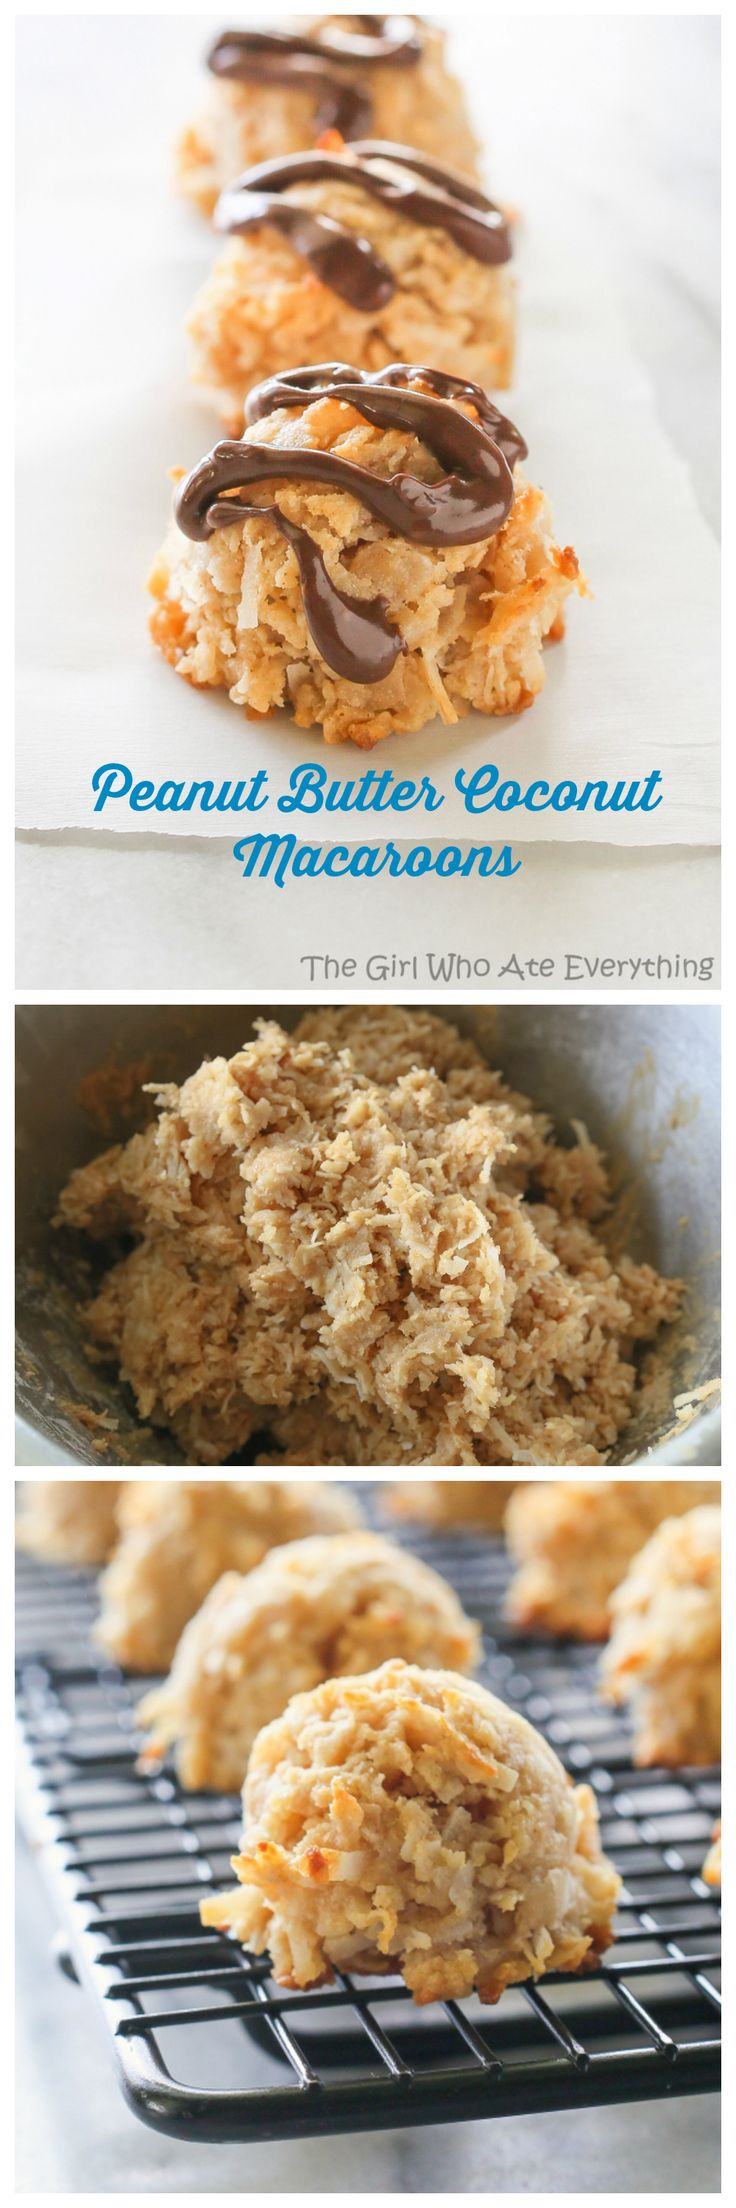 ... Peanut, Butter Macaroons, Butter Coconut, Coconut Macaroons